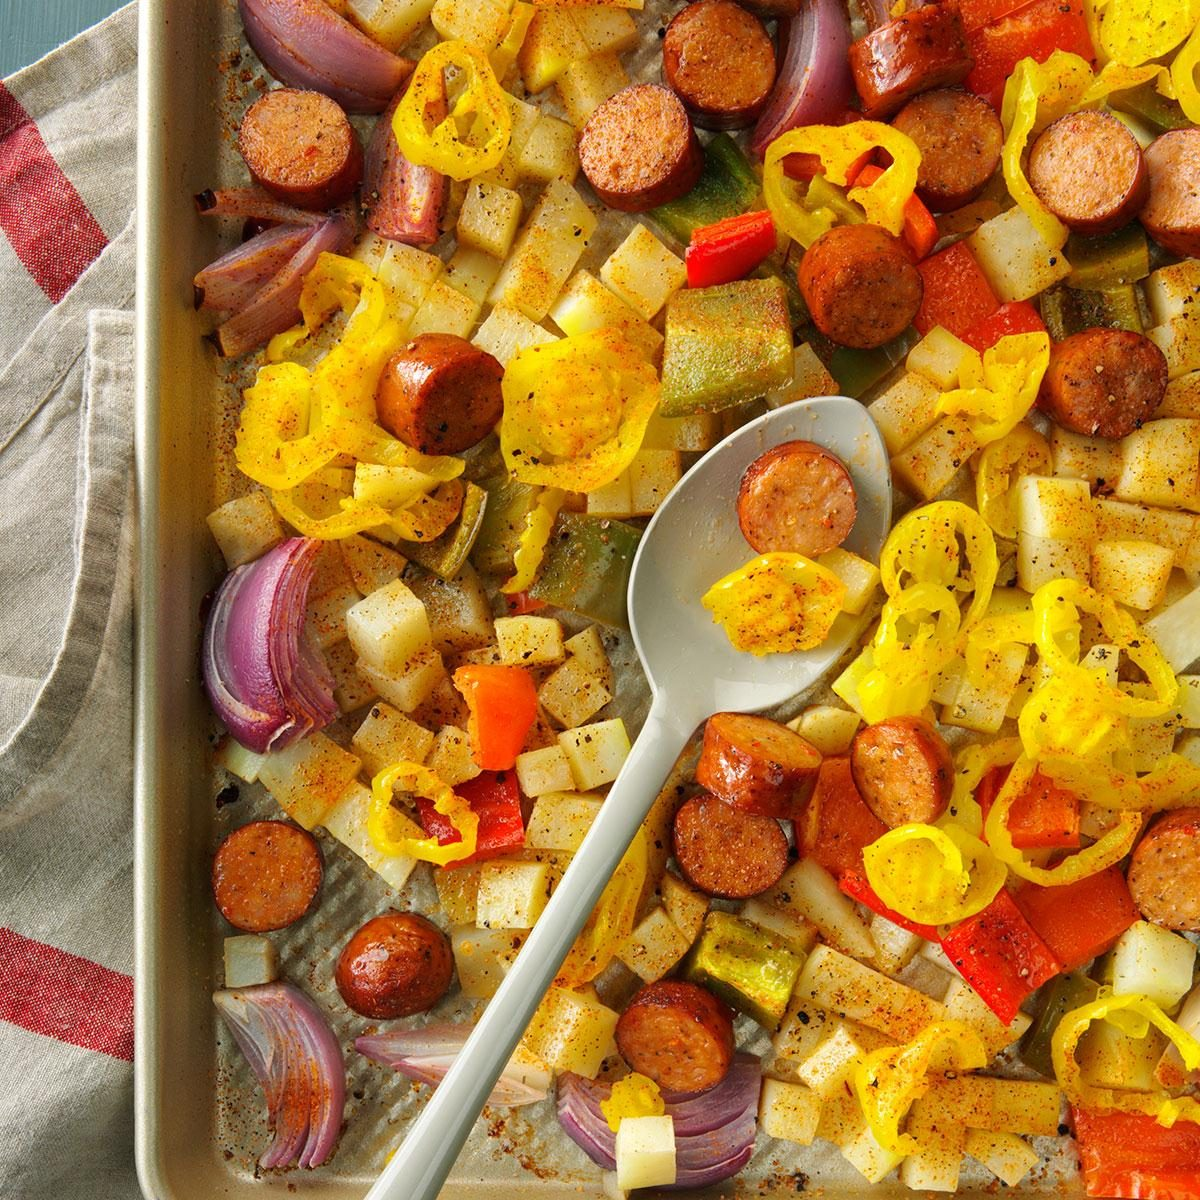 Thursday: Spicy Roasted Sausage, Potatoes and Peppers